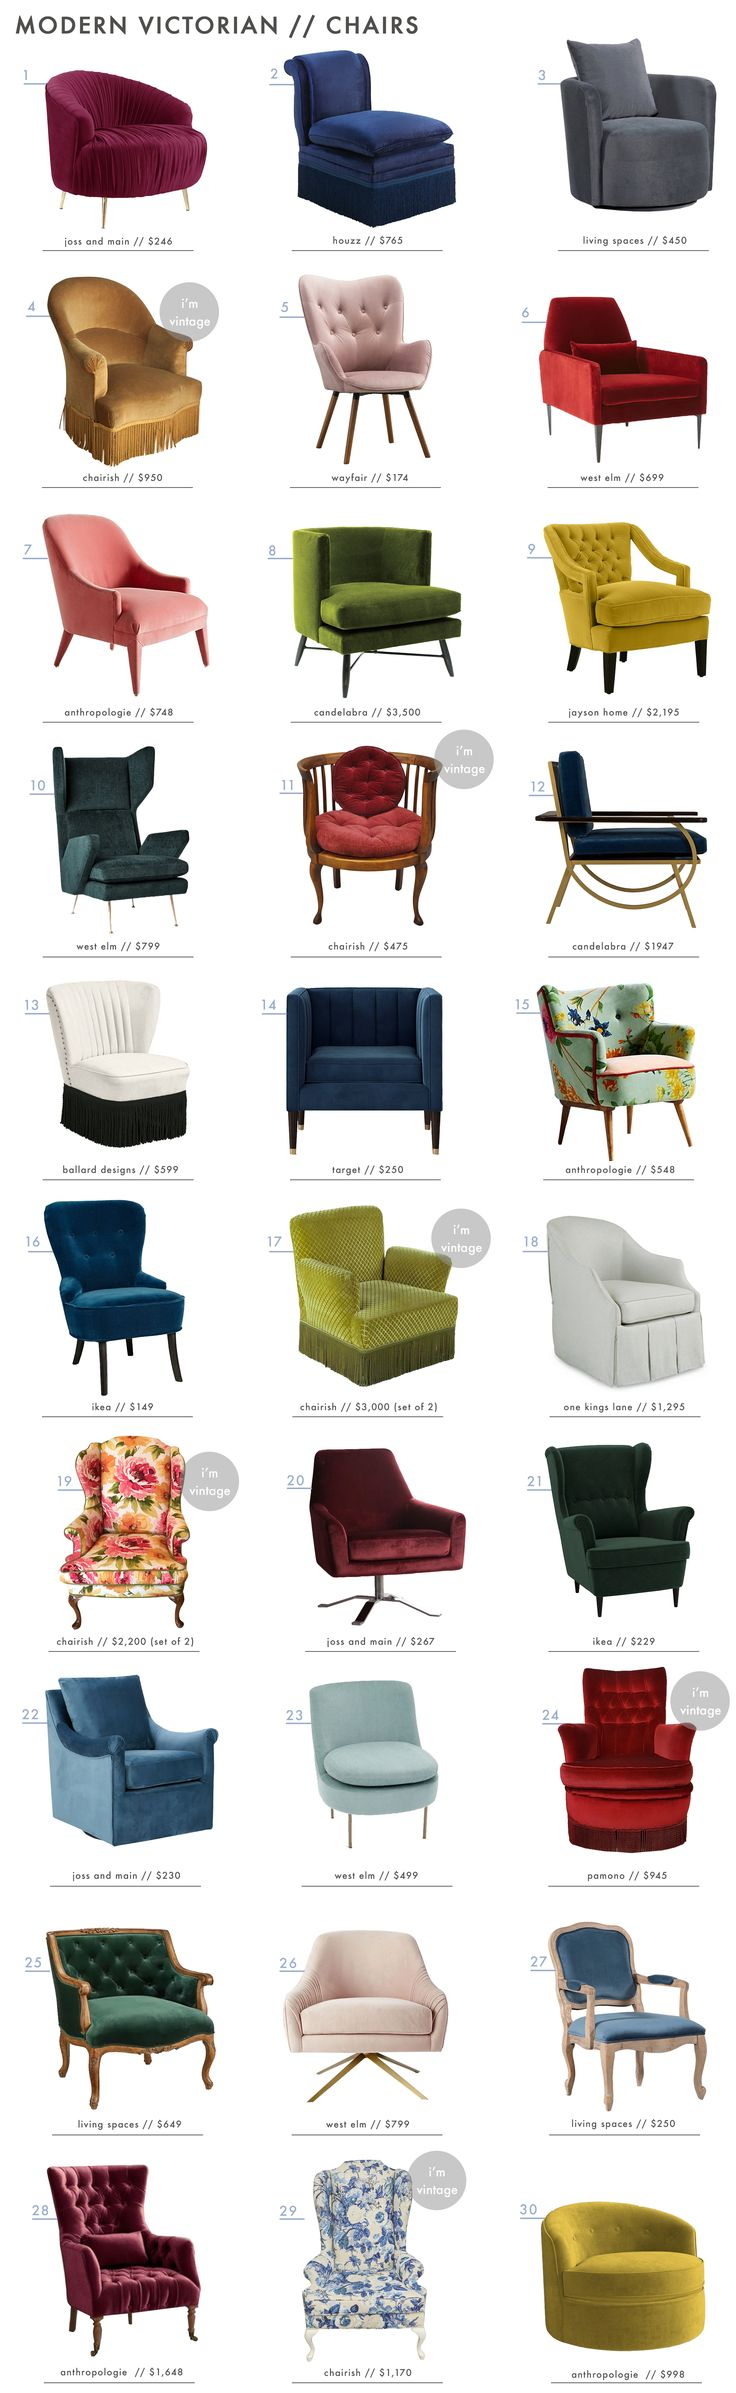 If modern victorian is your style then these accent chairs are just for you.  #chairs #interiordesign #modern #traditional #victorian